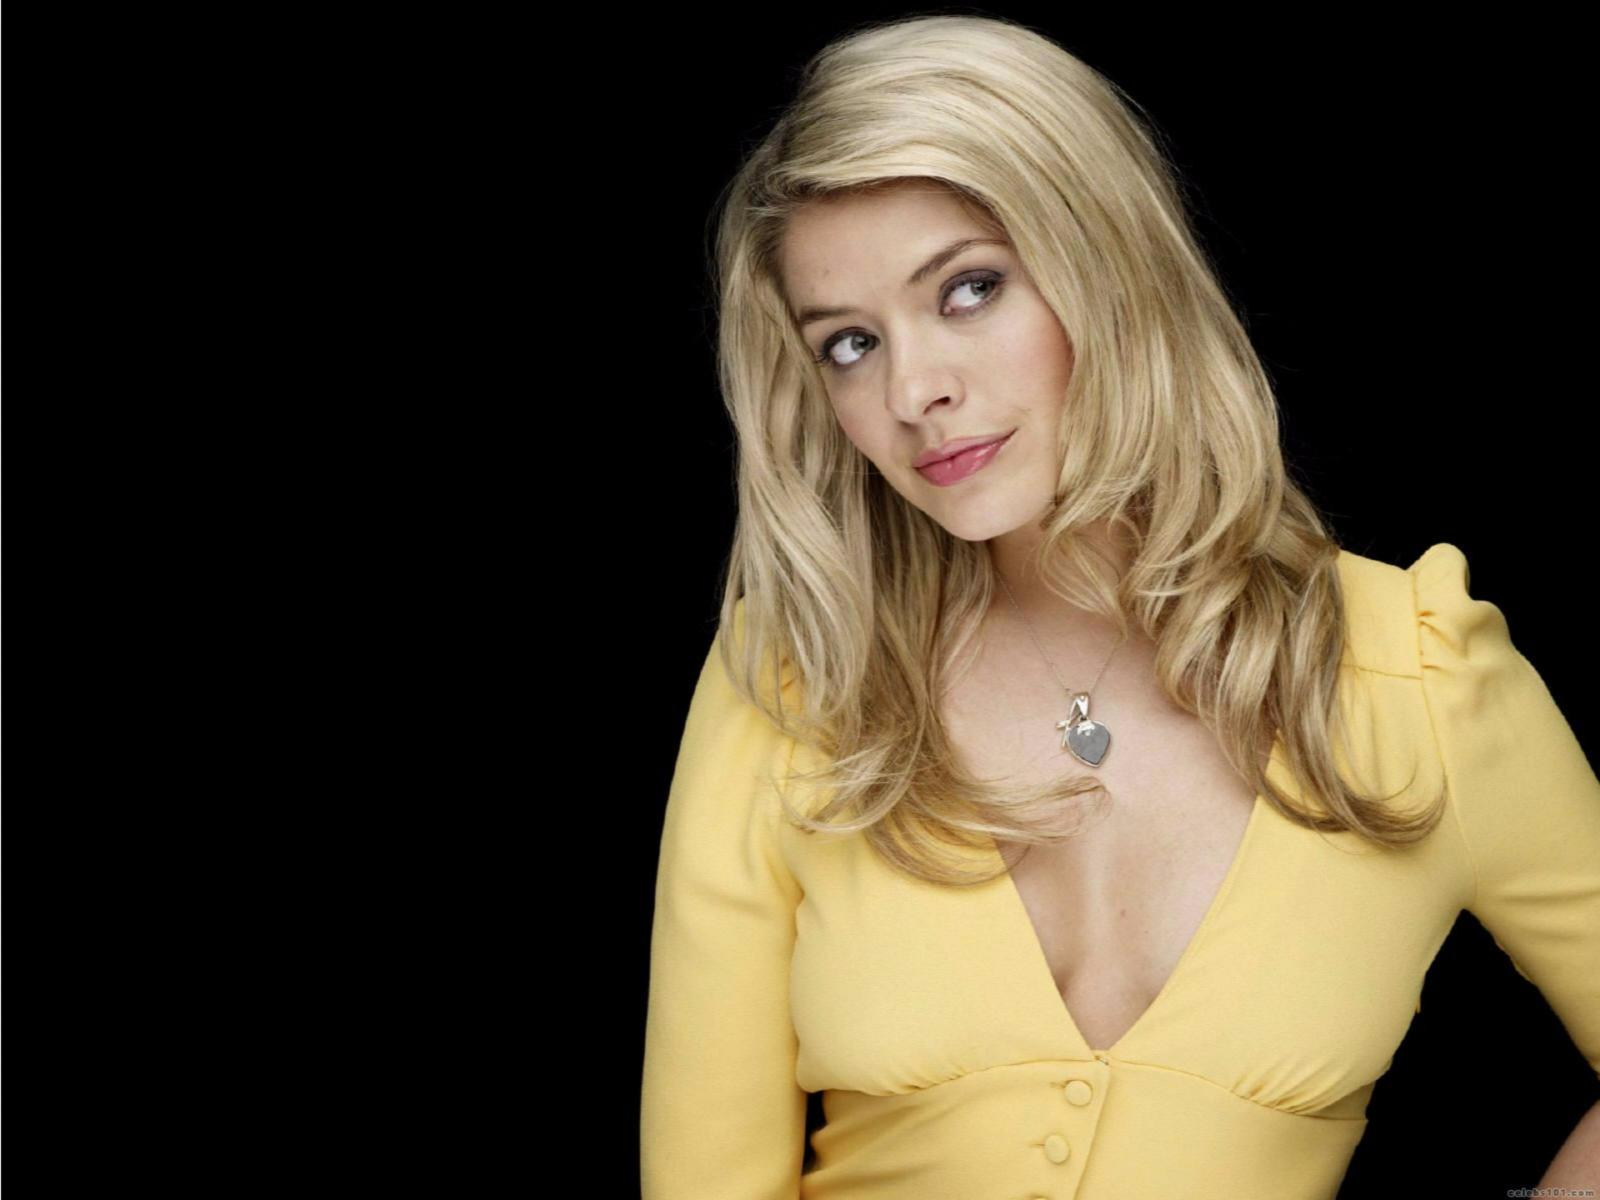 1600x1200 - Holly Willoughby Wallpapers 28